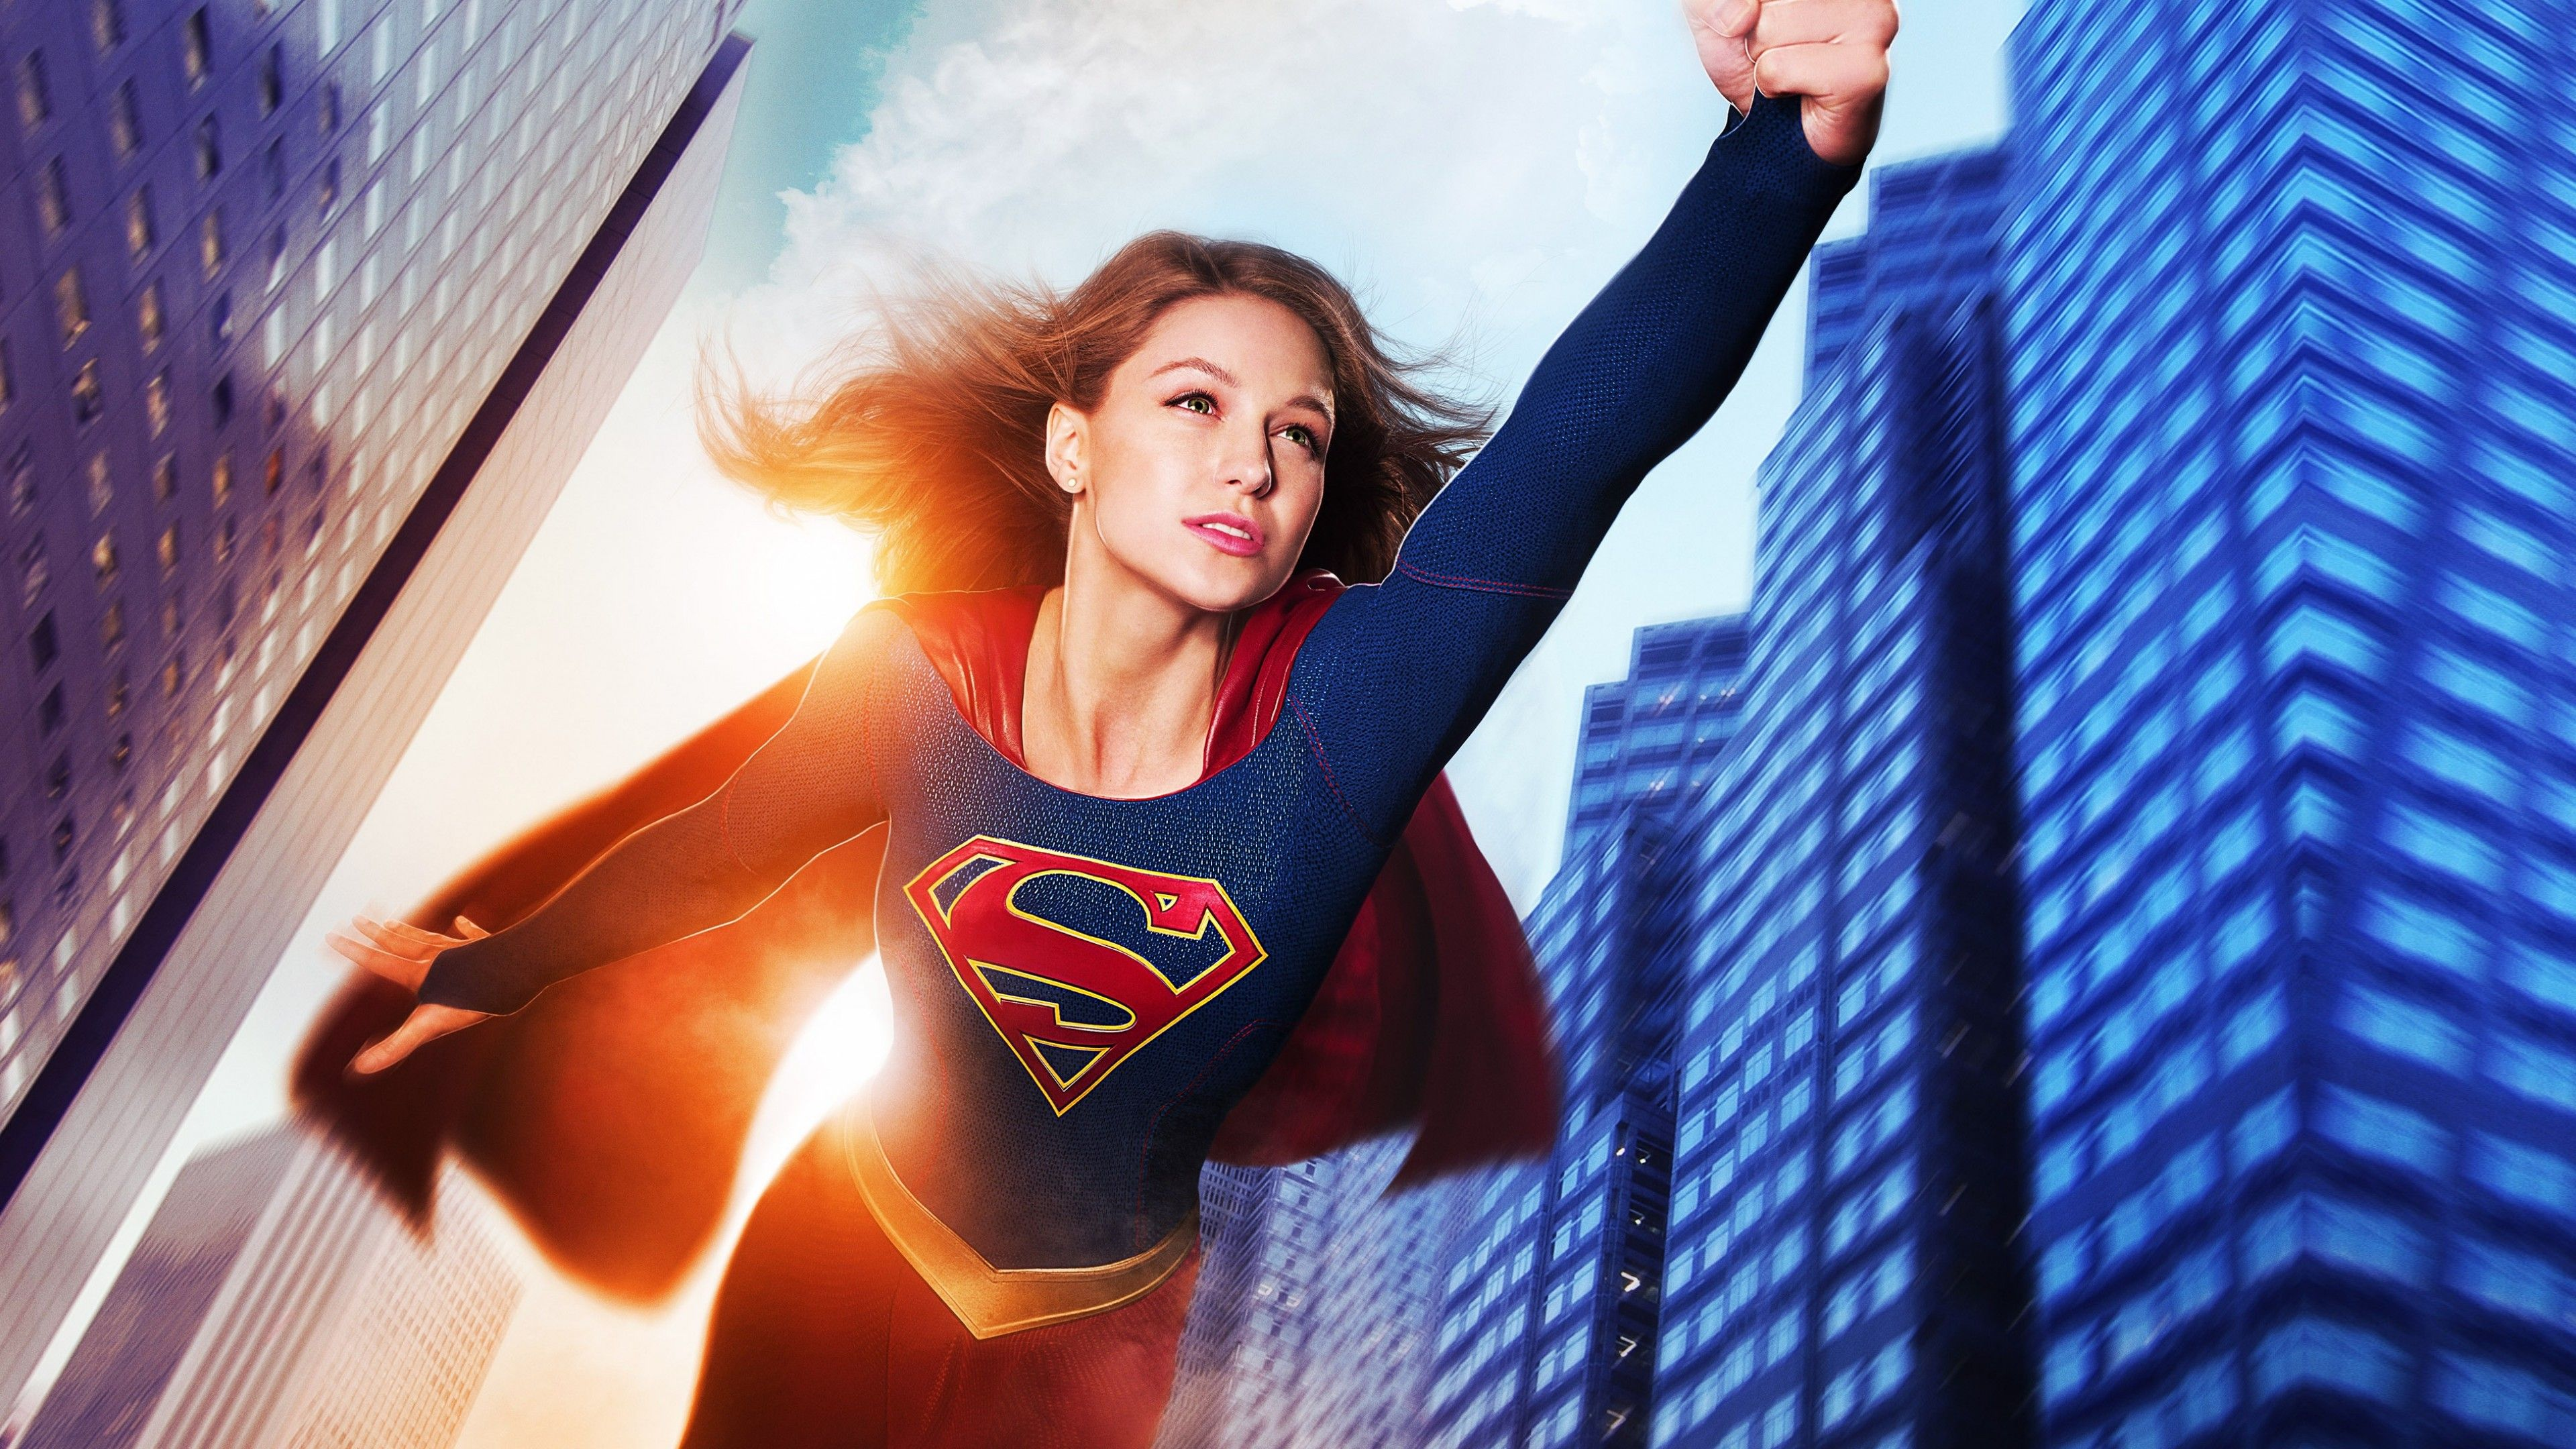 super girl wallpaper